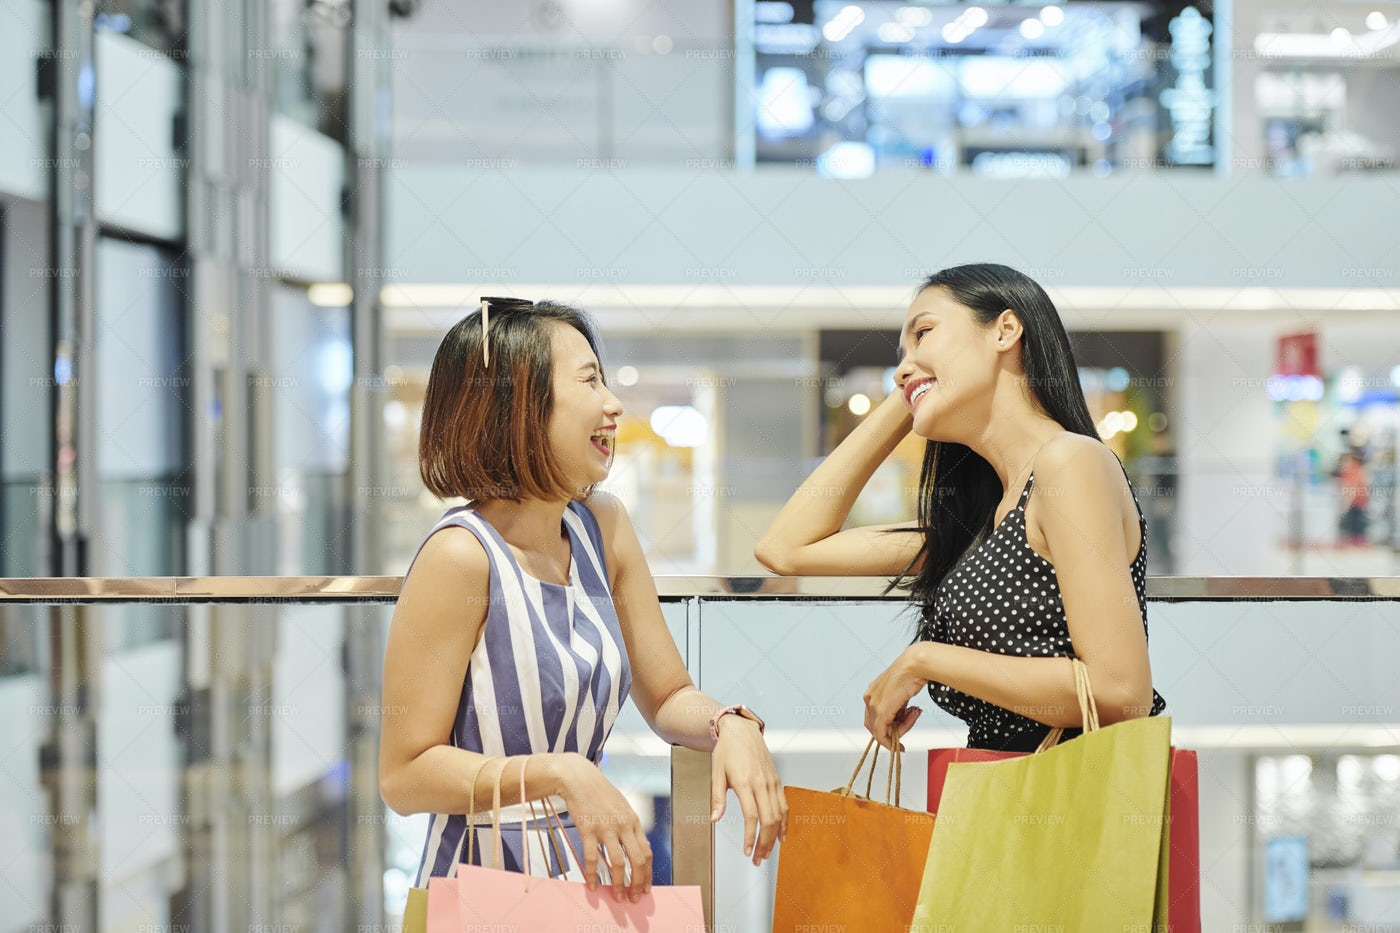 Friends In The Shopping Mall: Stock Photos